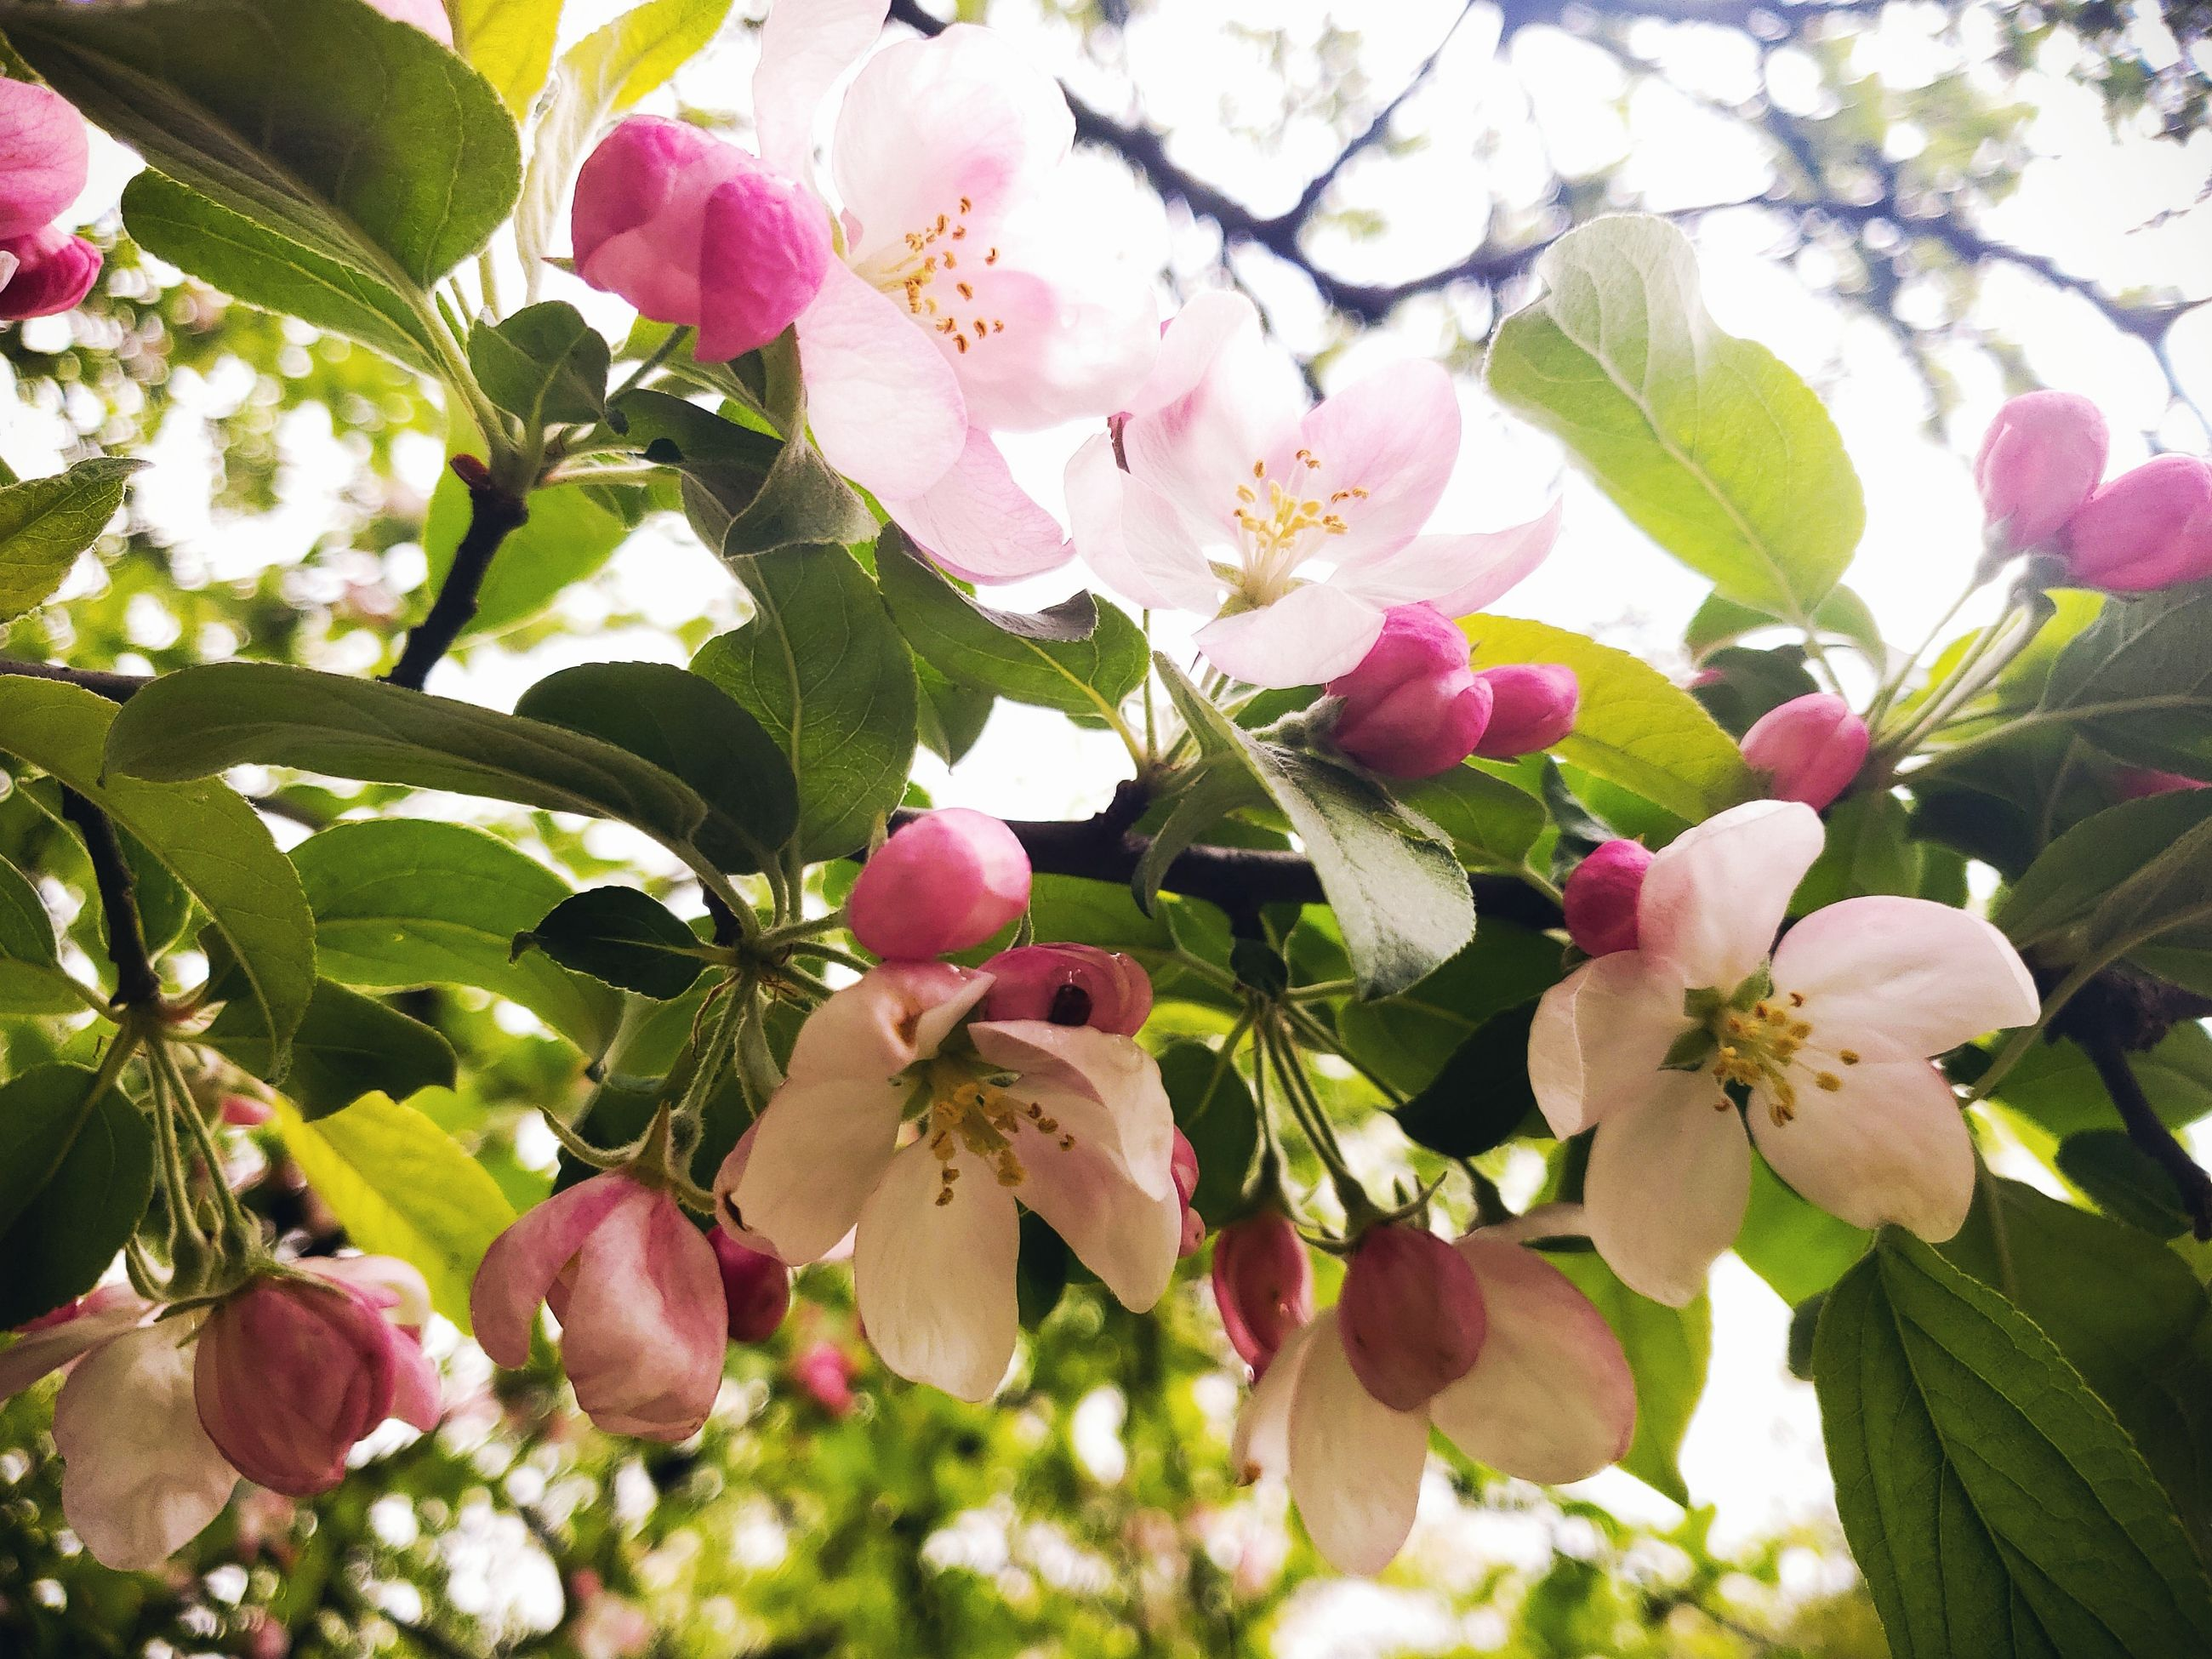 plant, flower, flowering plant, freshness, fragility, vulnerability, beauty in nature, growth, petal, pink color, flower head, nature, inflorescence, close-up, tree, plant part, day, leaf, no people, blossom, outdoors, pollen, springtime, cherry blossom